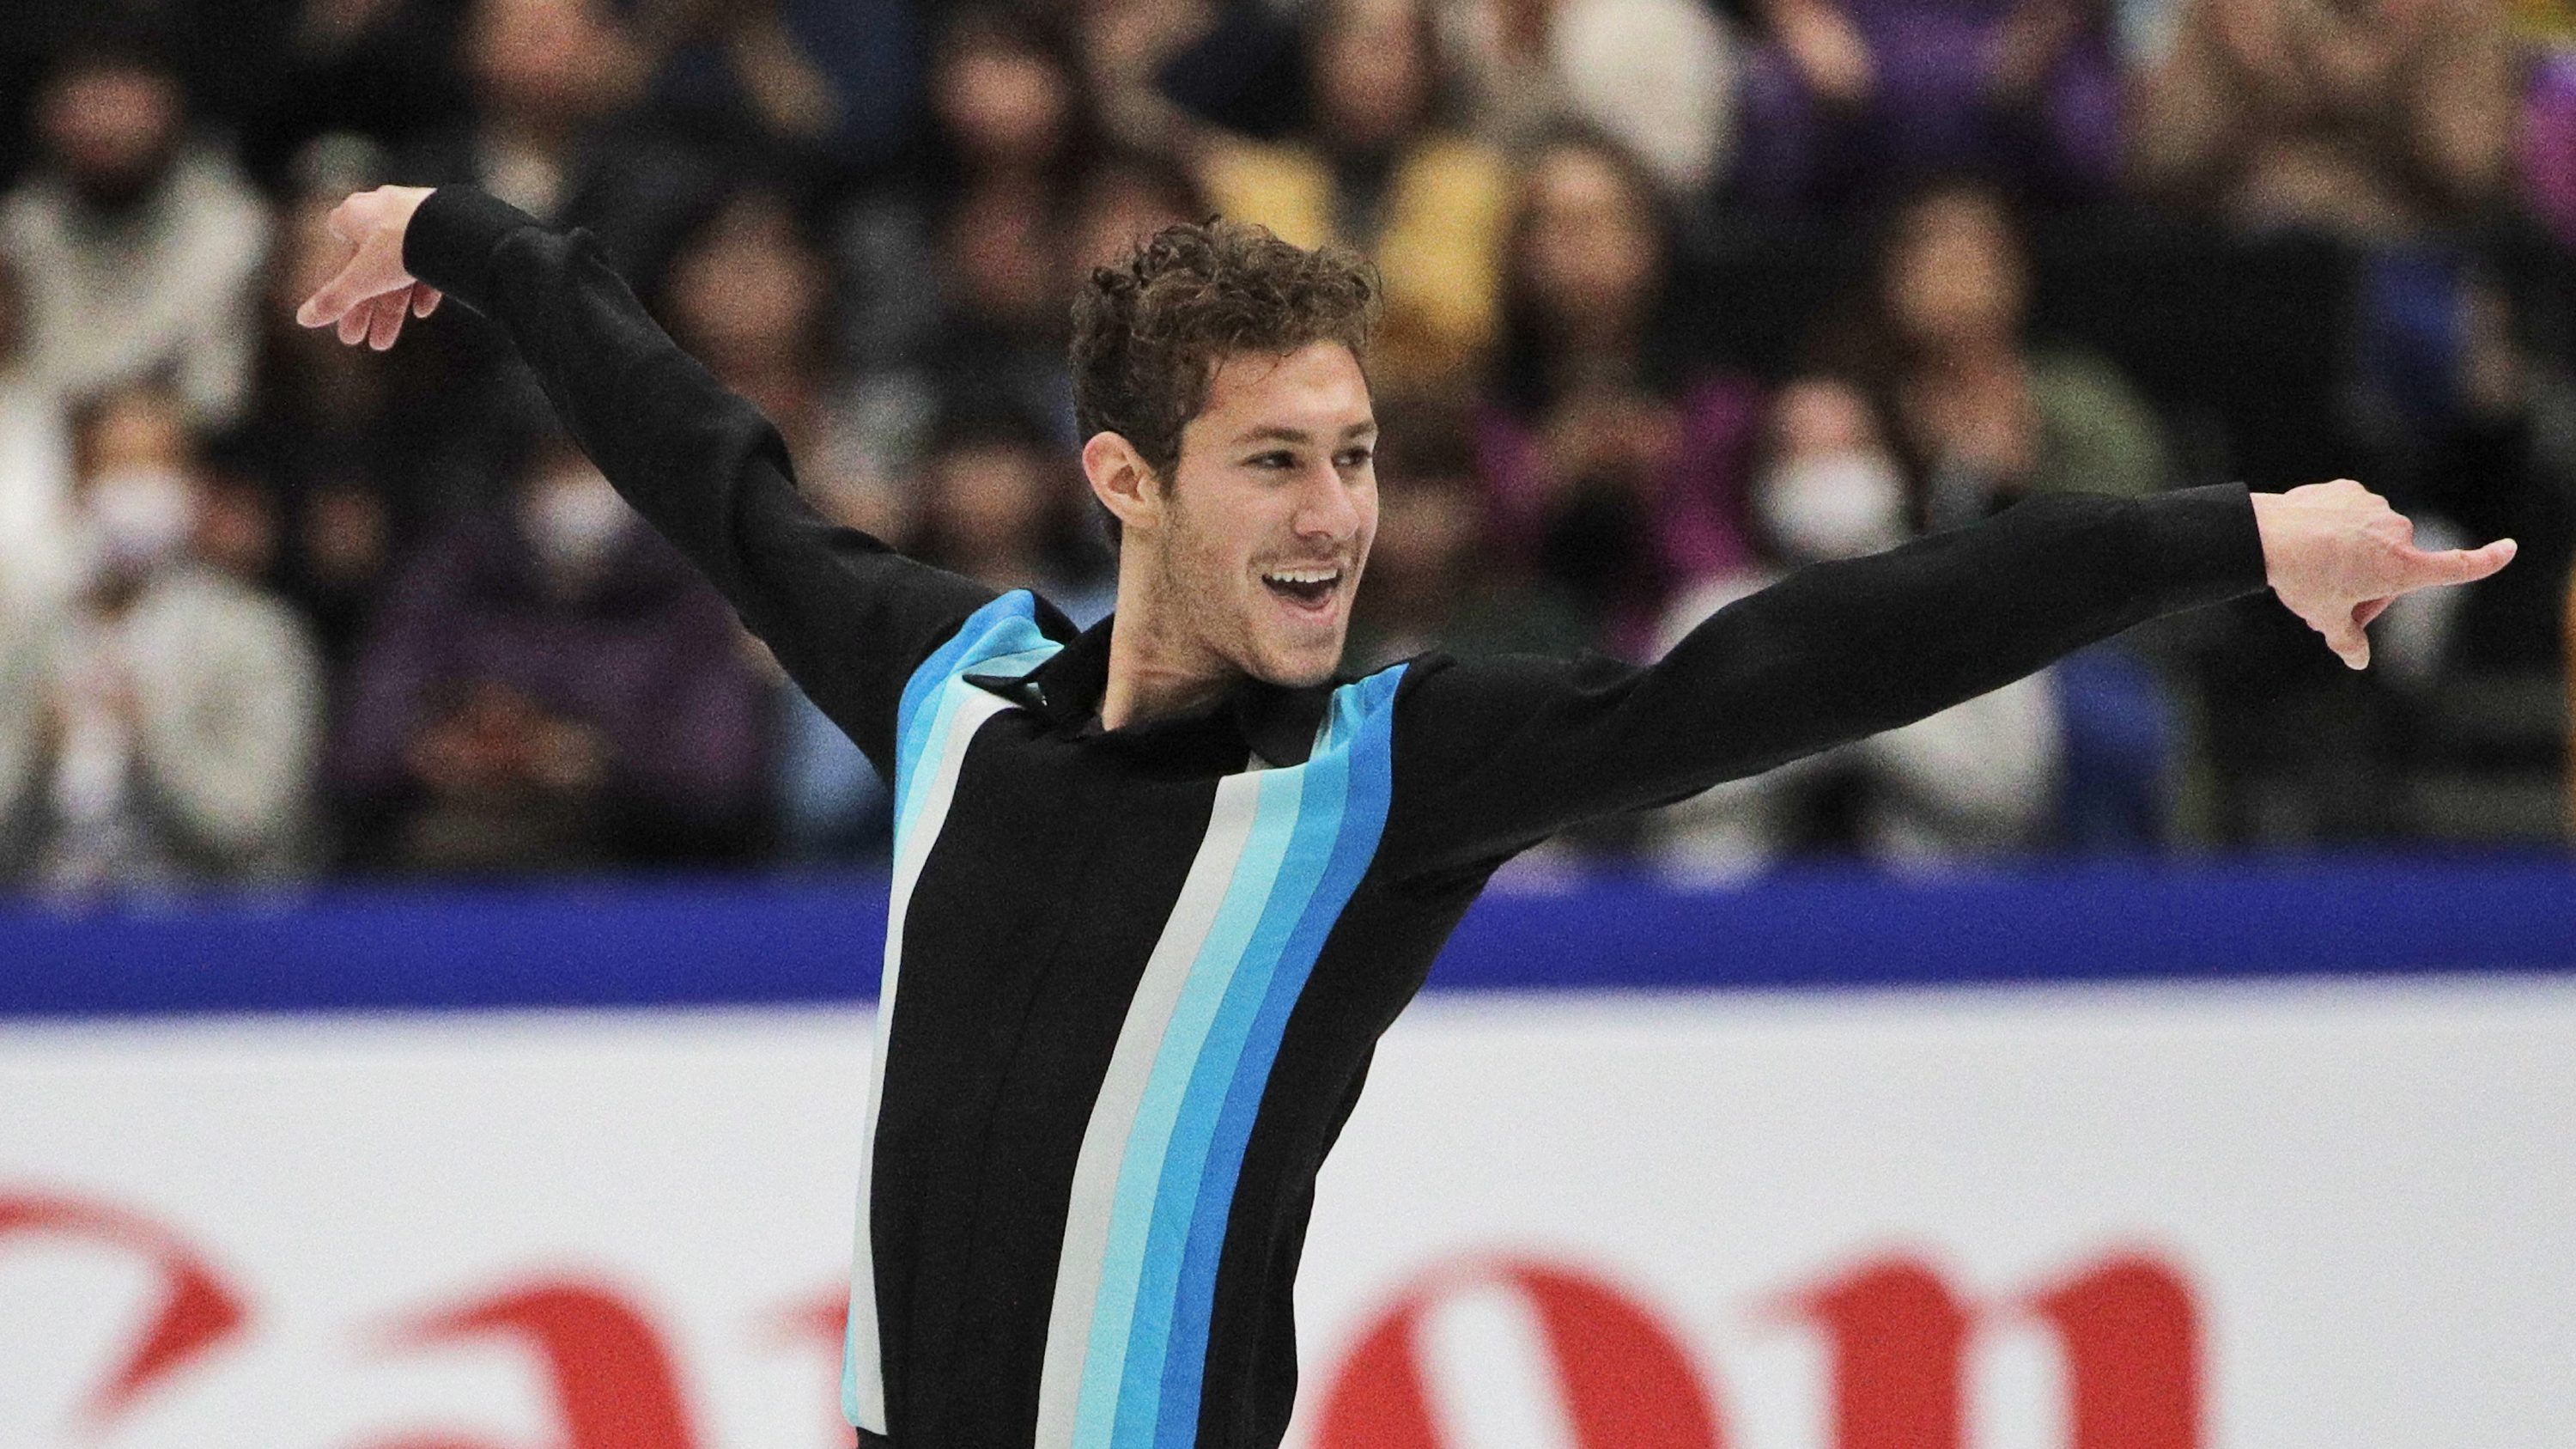 The Gay Games Have Meant The World To This Figure Skater